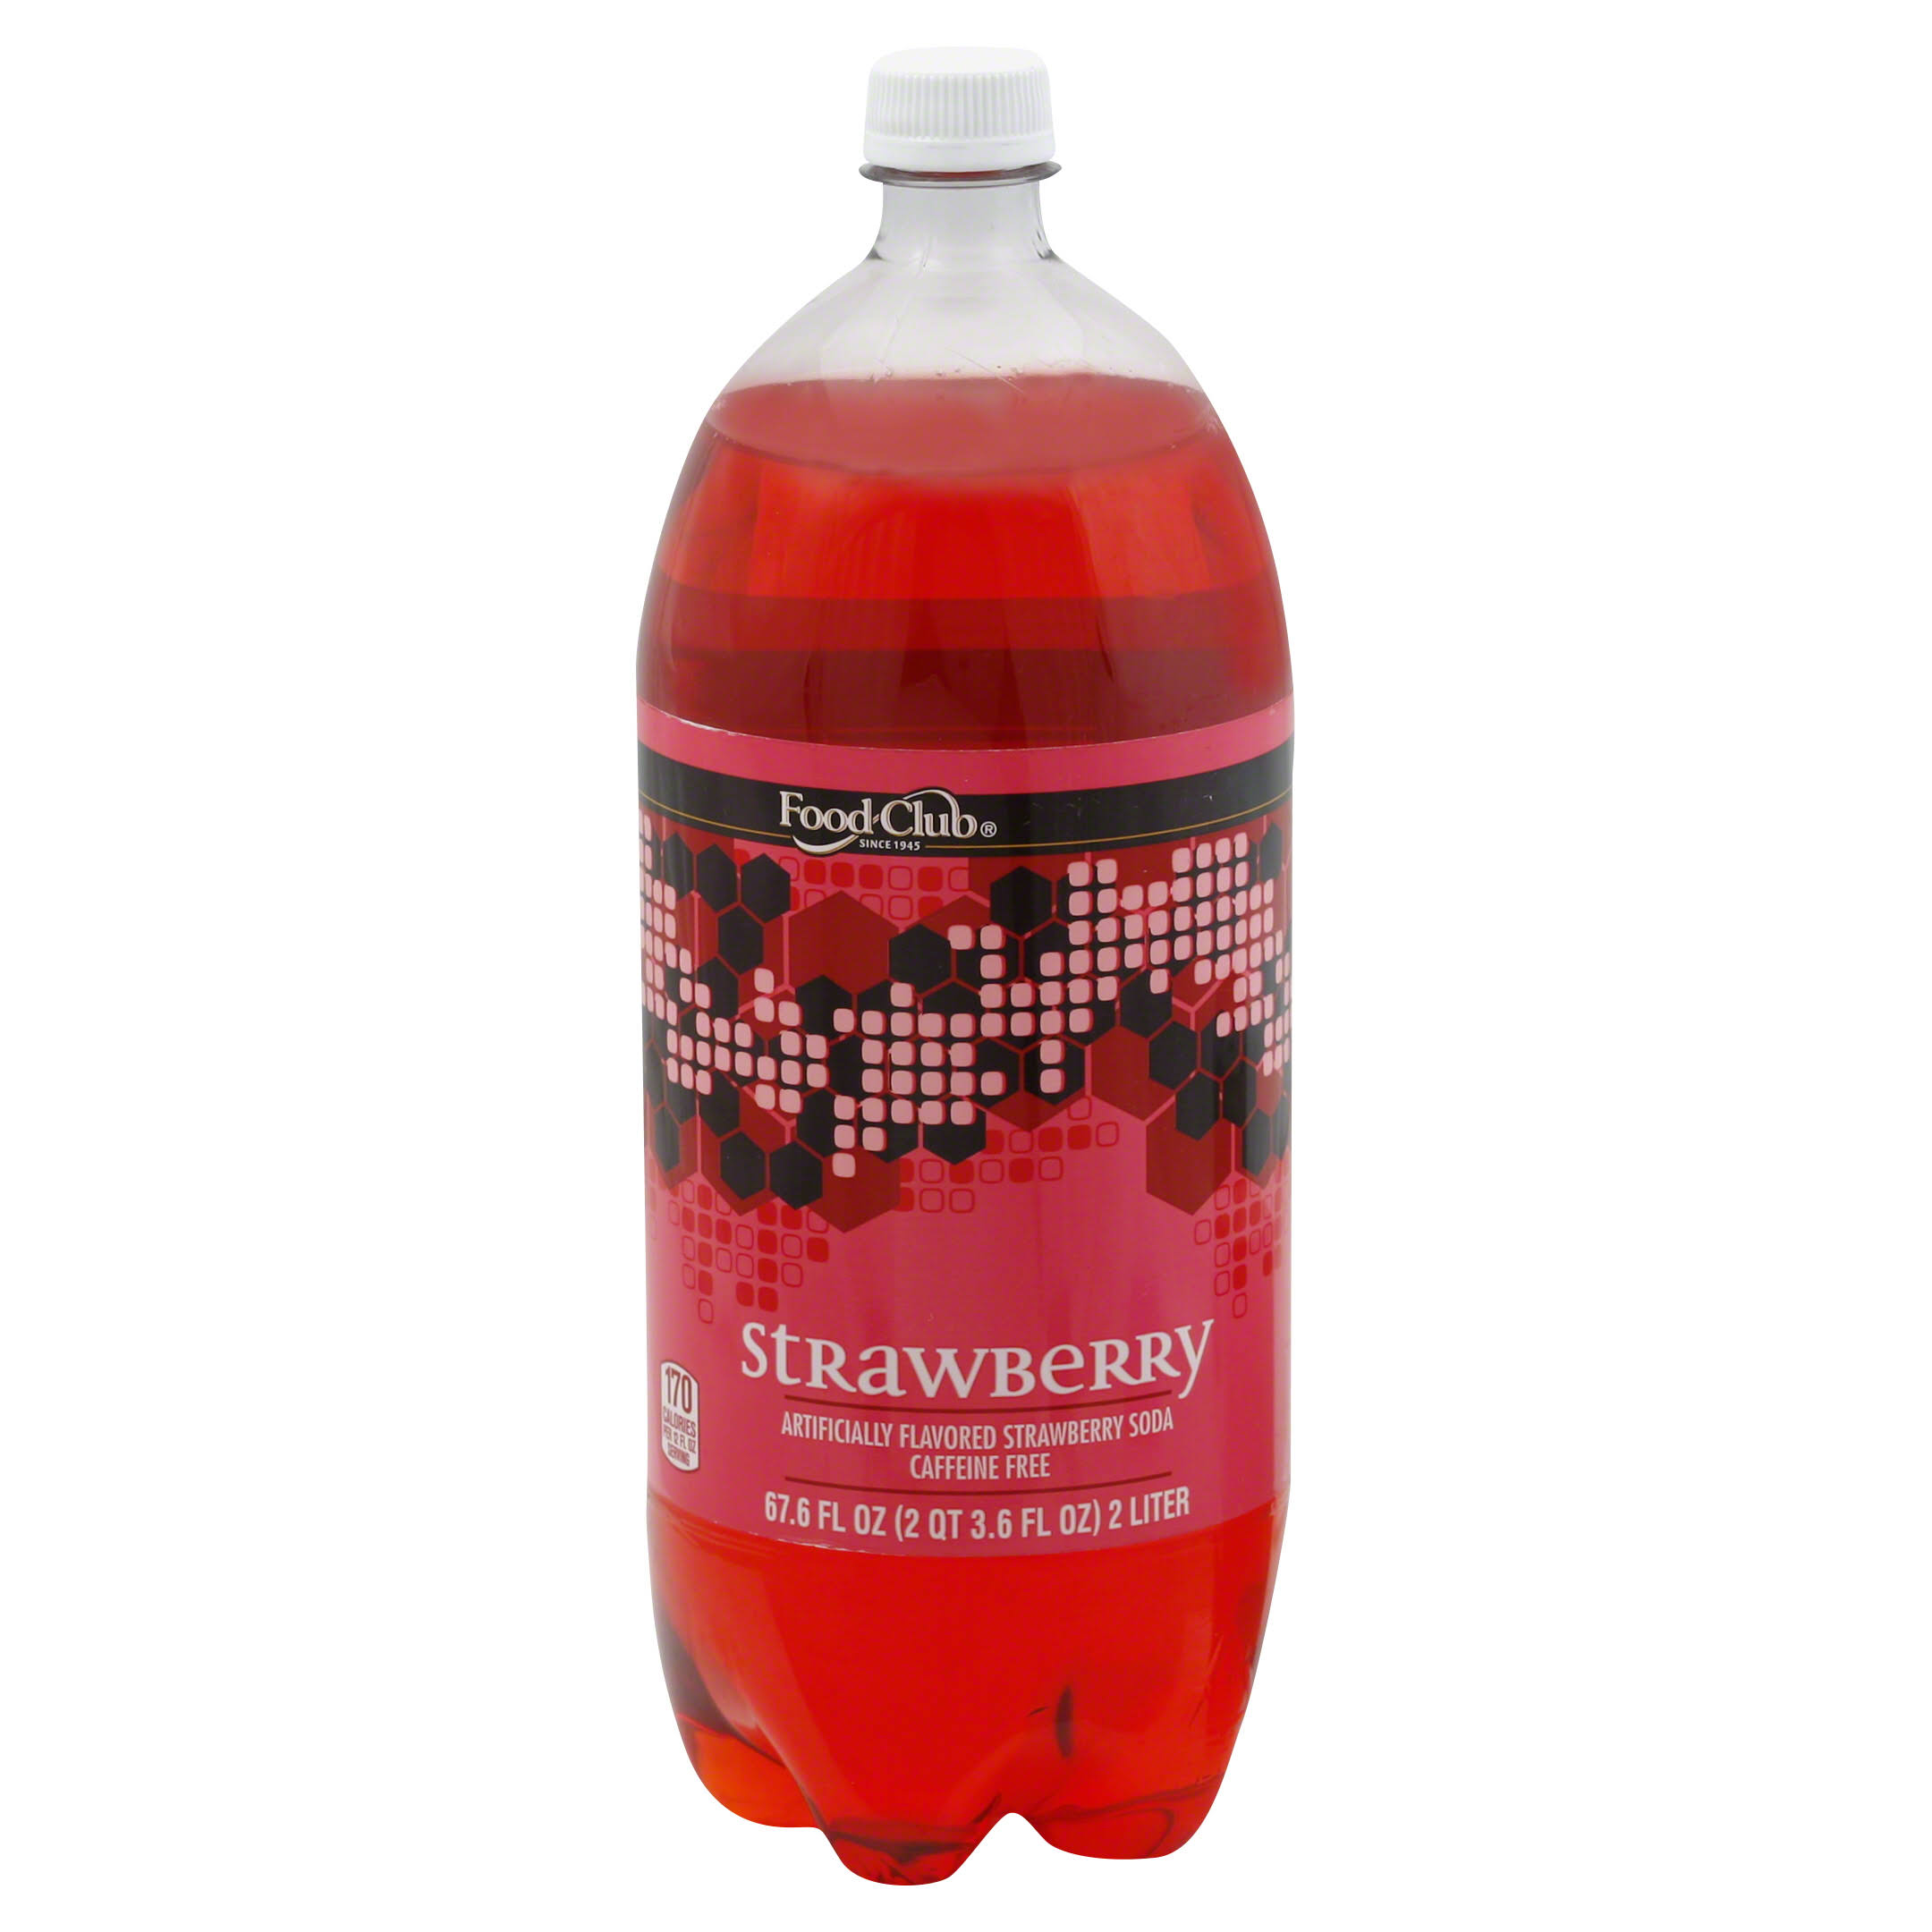 Food Club Soda, Strawberry - 67.6 fl oz